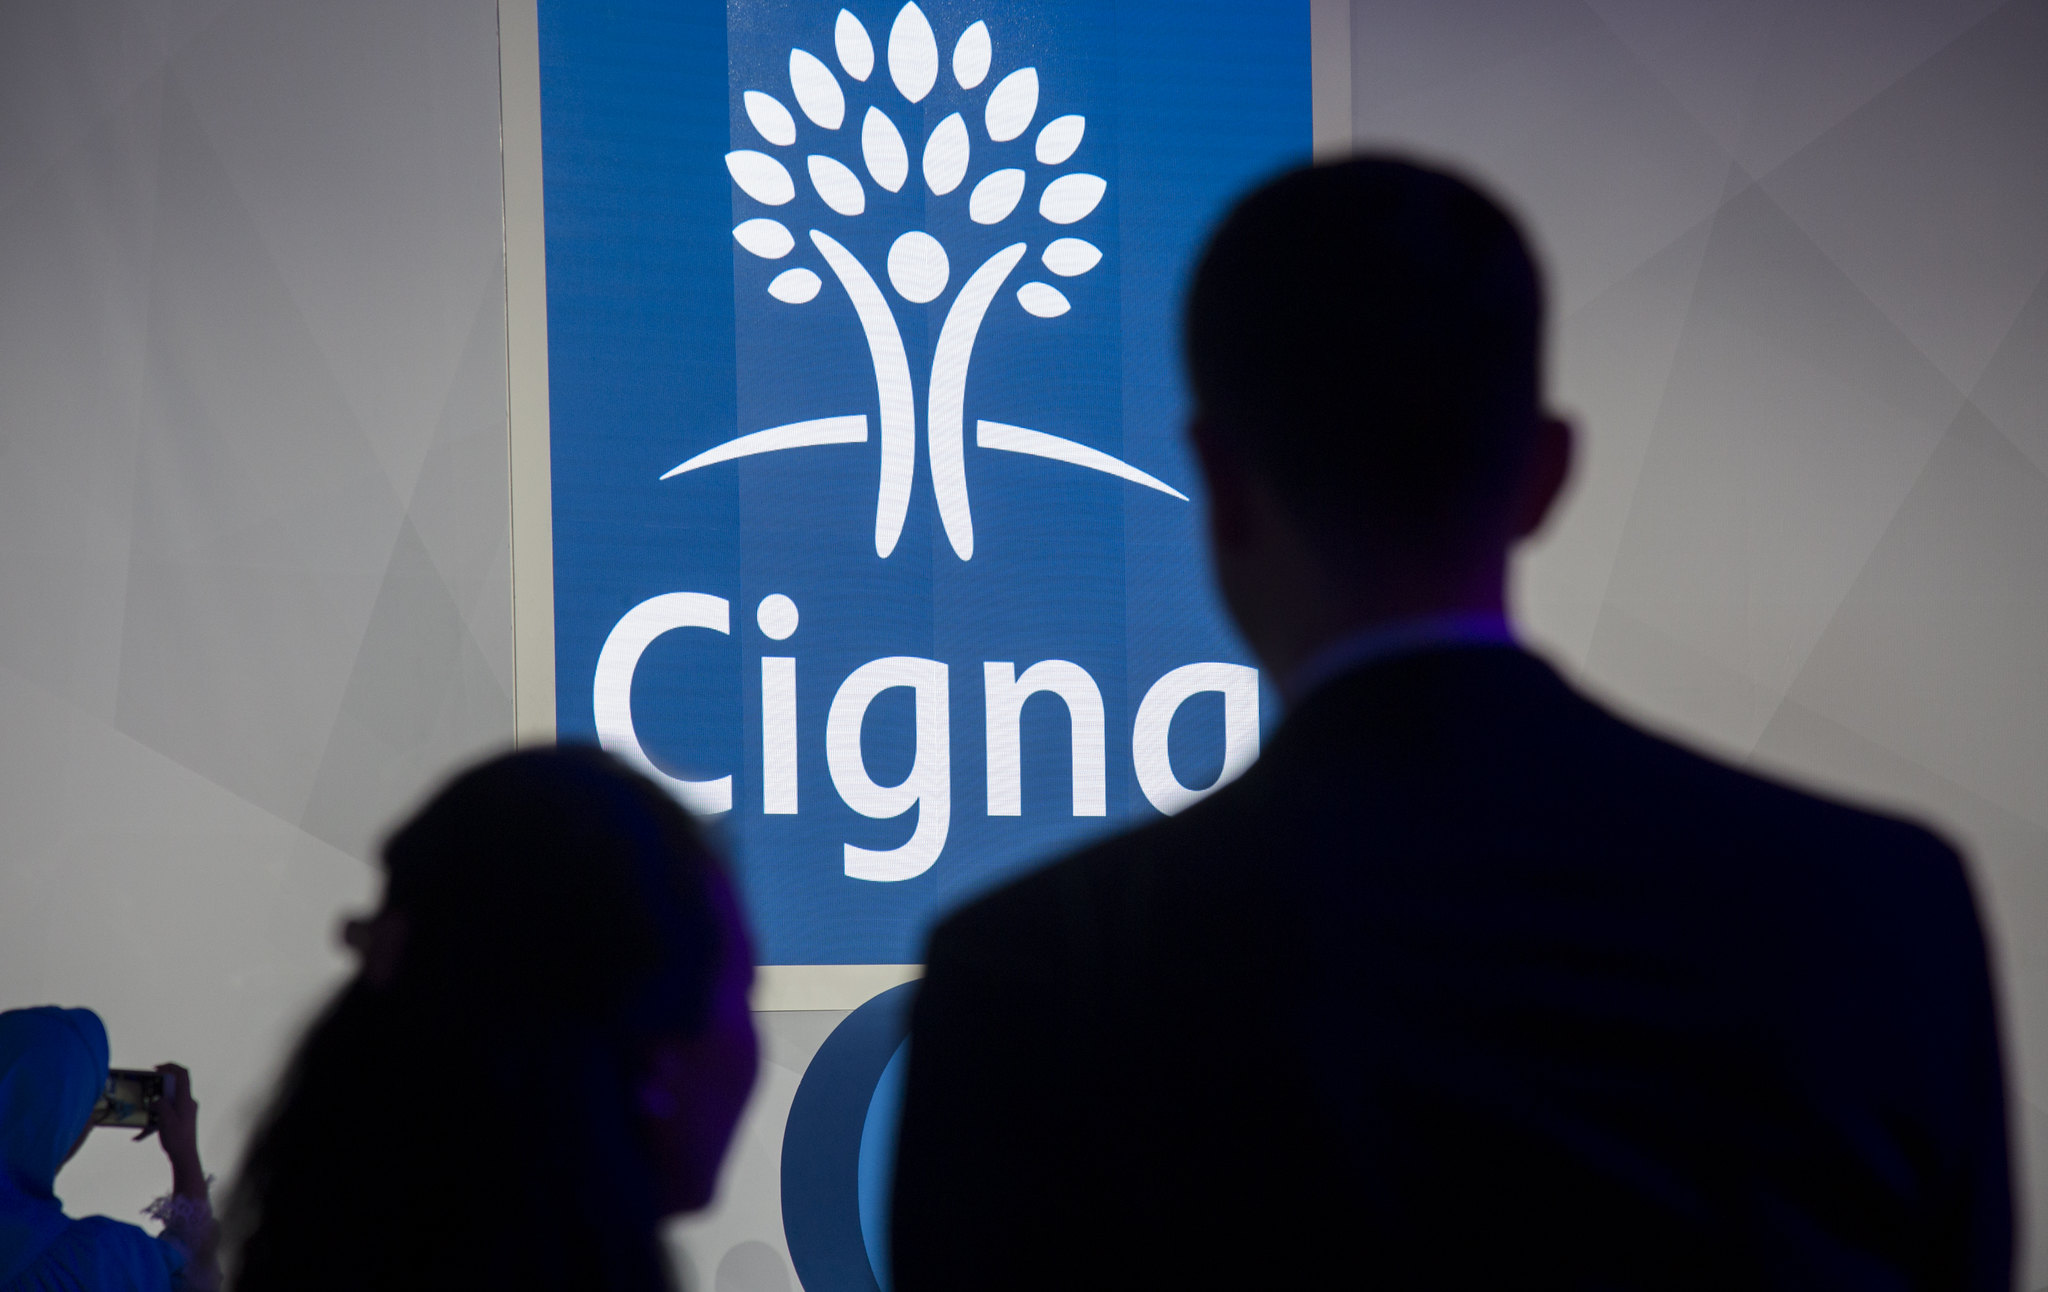 Protest planned outside Cigna CEO's home over public option bill